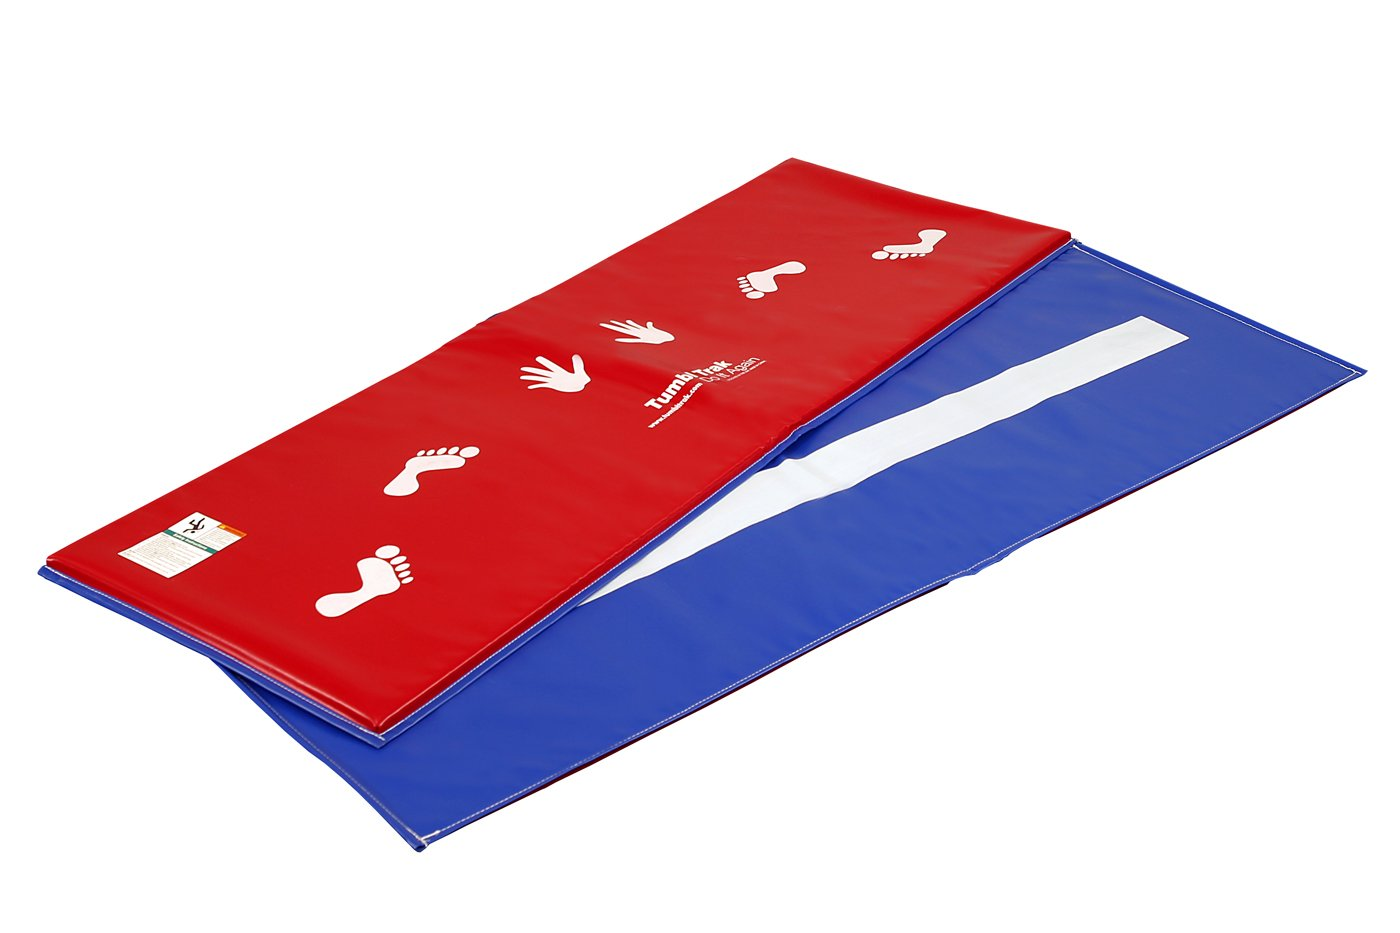 Tumbl Trak Red and Royal Blue Cartwheel Beam Mat, Hands and Feet on Red Side and Beam Line on Royal Blue Side, 2-Feet Width x 6-Feet Length x 5/8-Inch Height